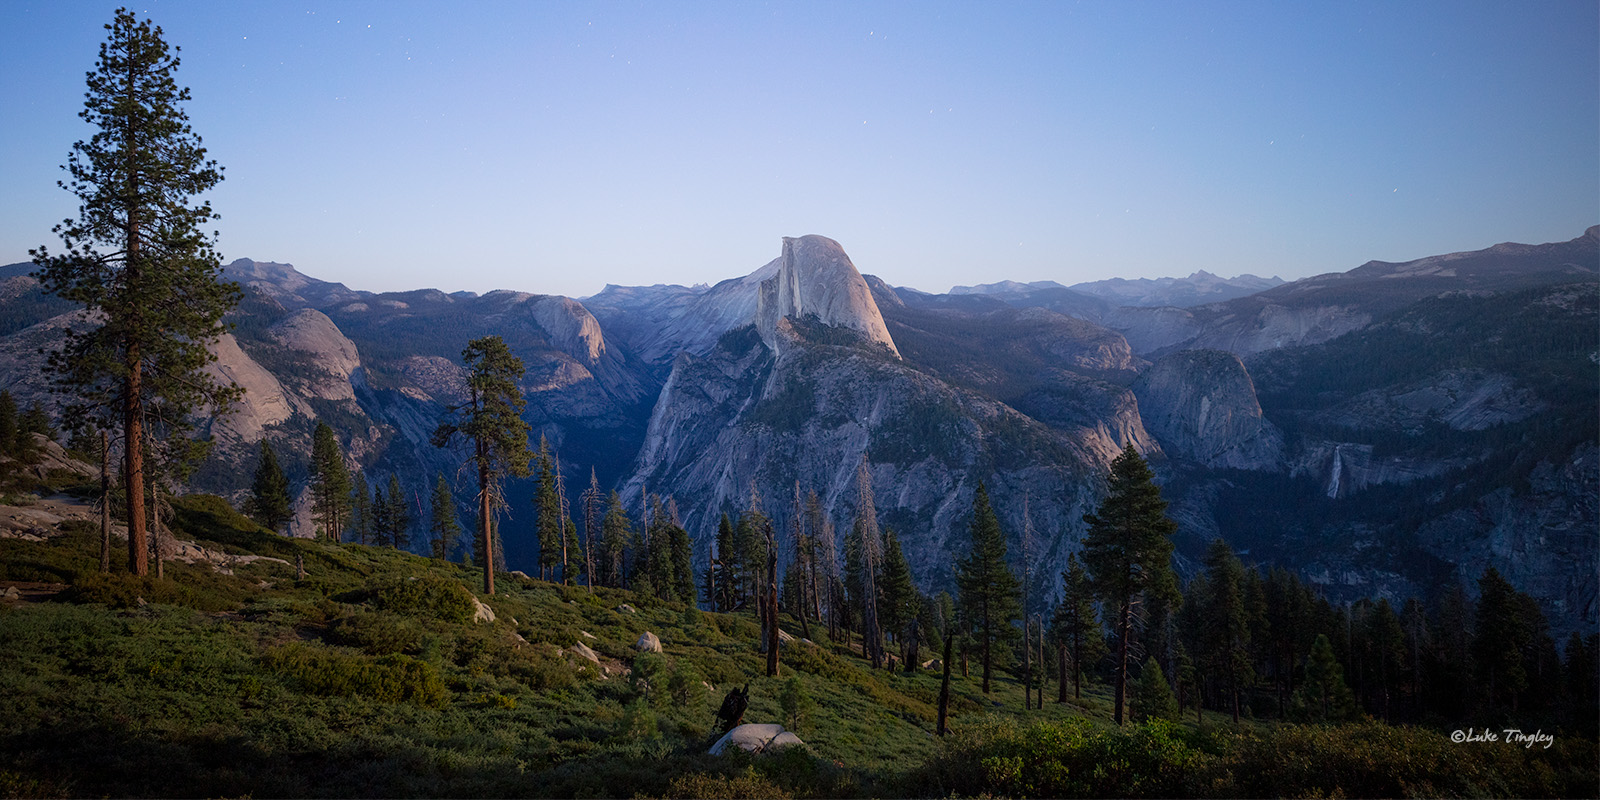 Halfdome in Yosemite, lit from the backside as a full moon rose over the horizon.